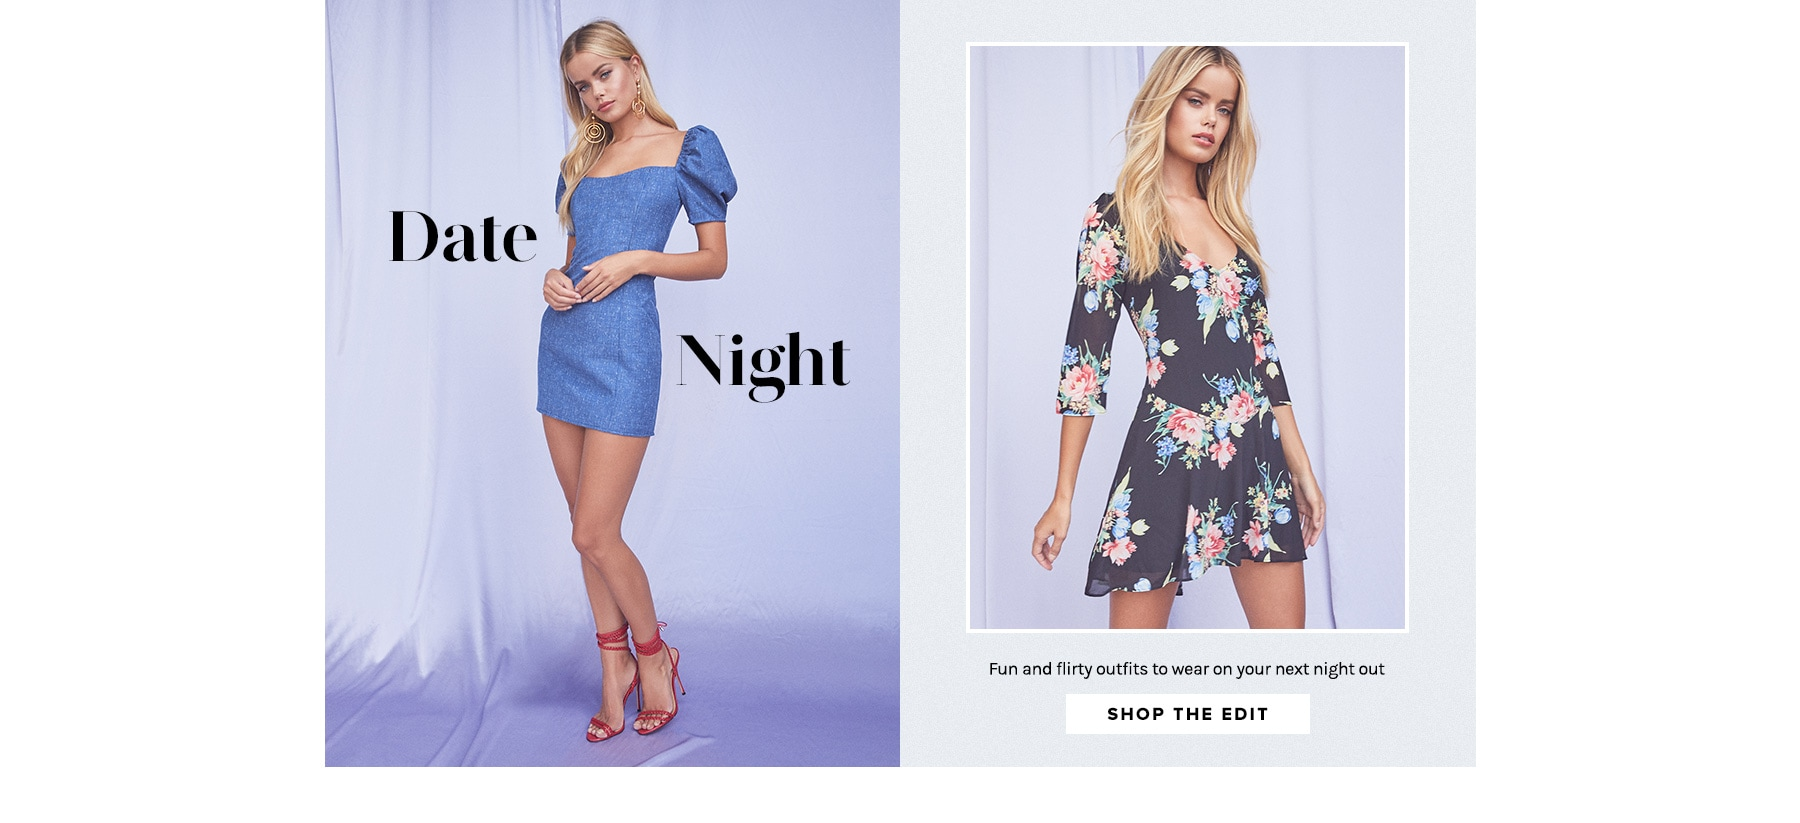 Date Night. Fun and flirty outfits to wear on your next night out. Shop the edit.